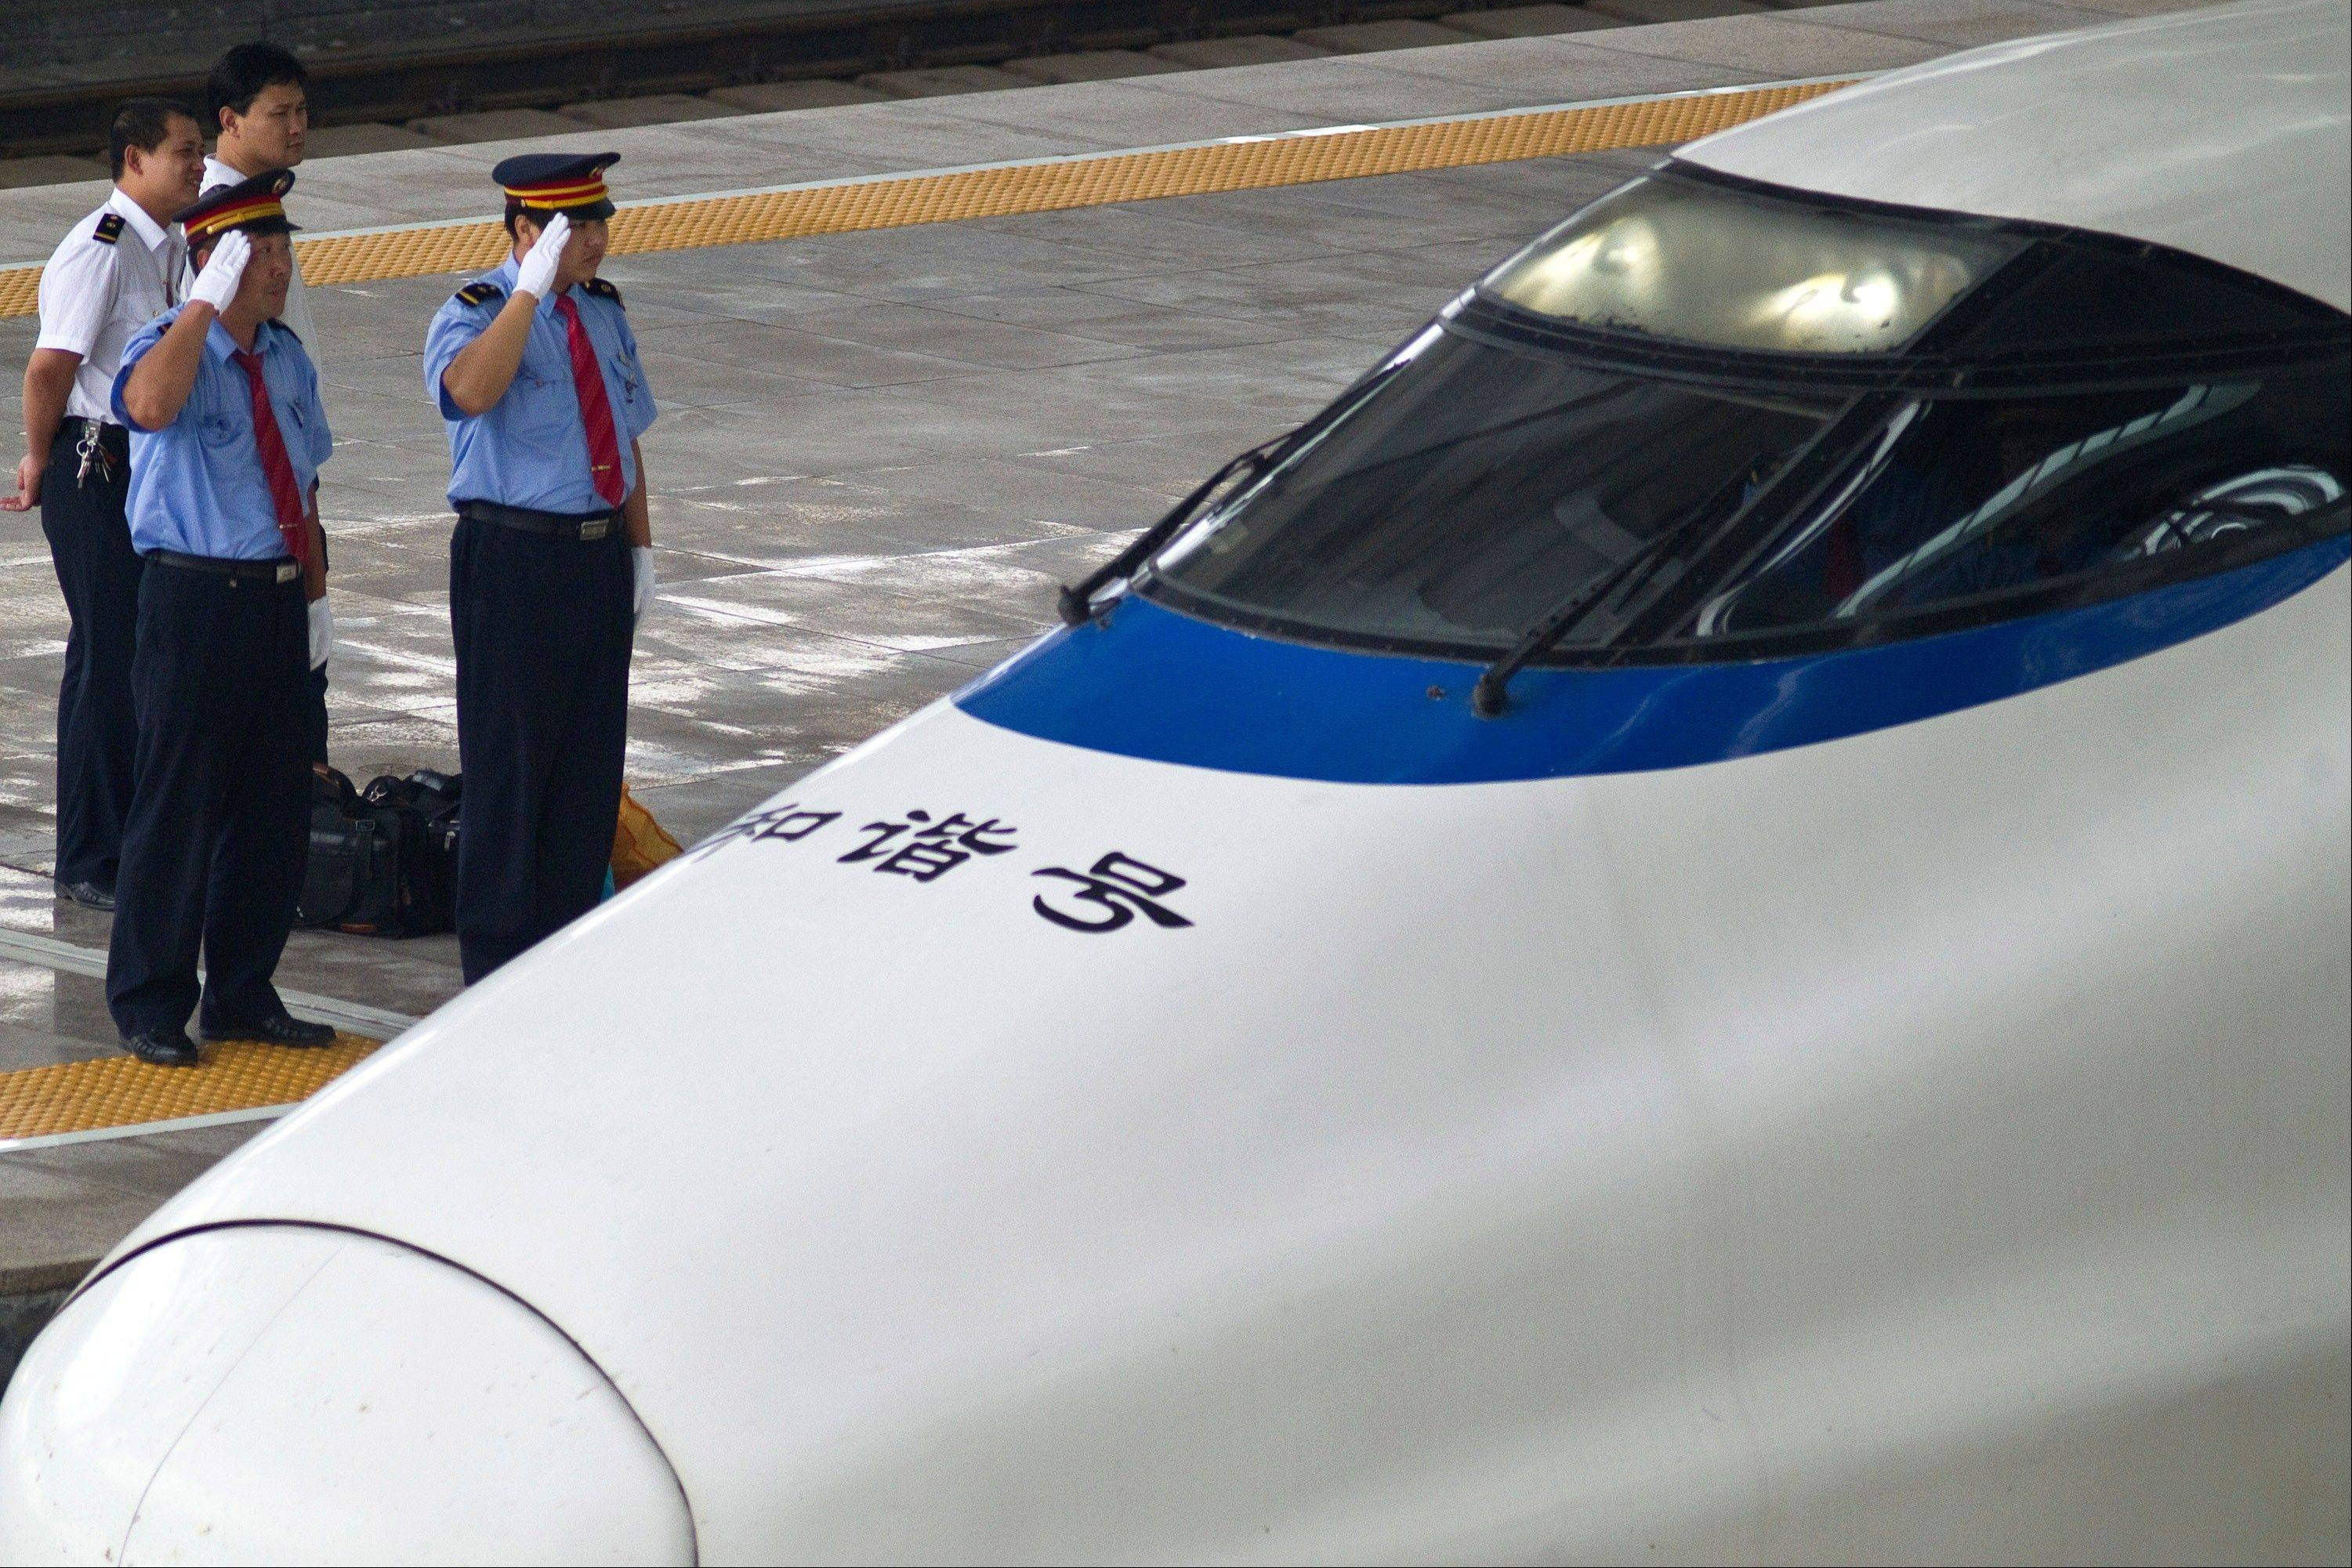 Train drivers salute as a CRH high-peed train arrives at Beijing South Station in Beijing Friday.